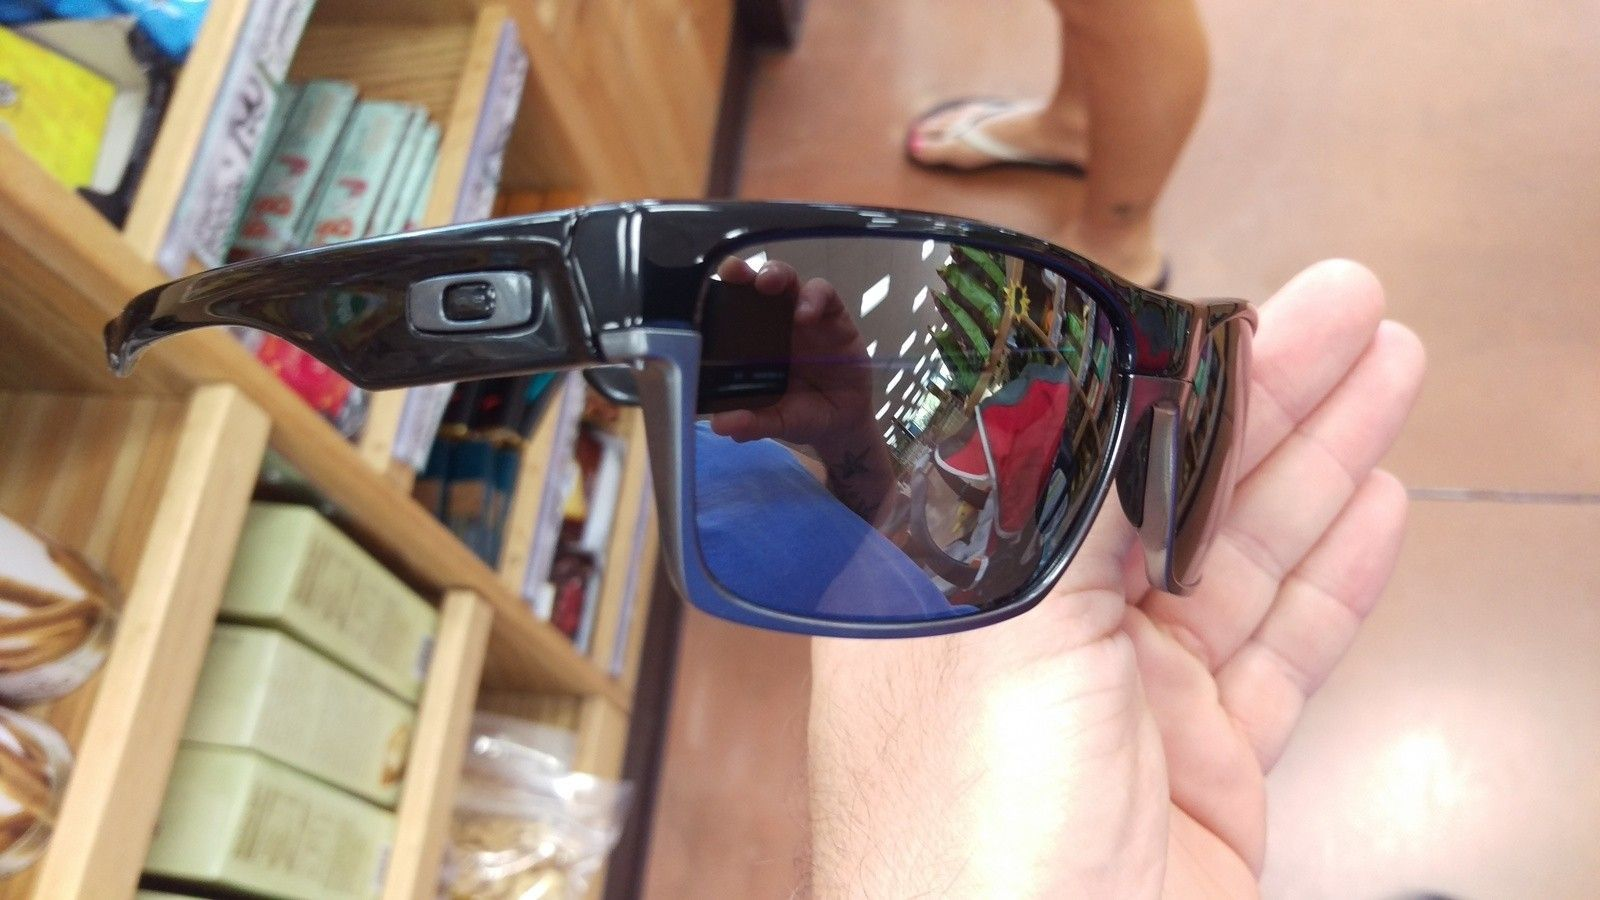 First pair of Oakley's - IMAG0542.jpg